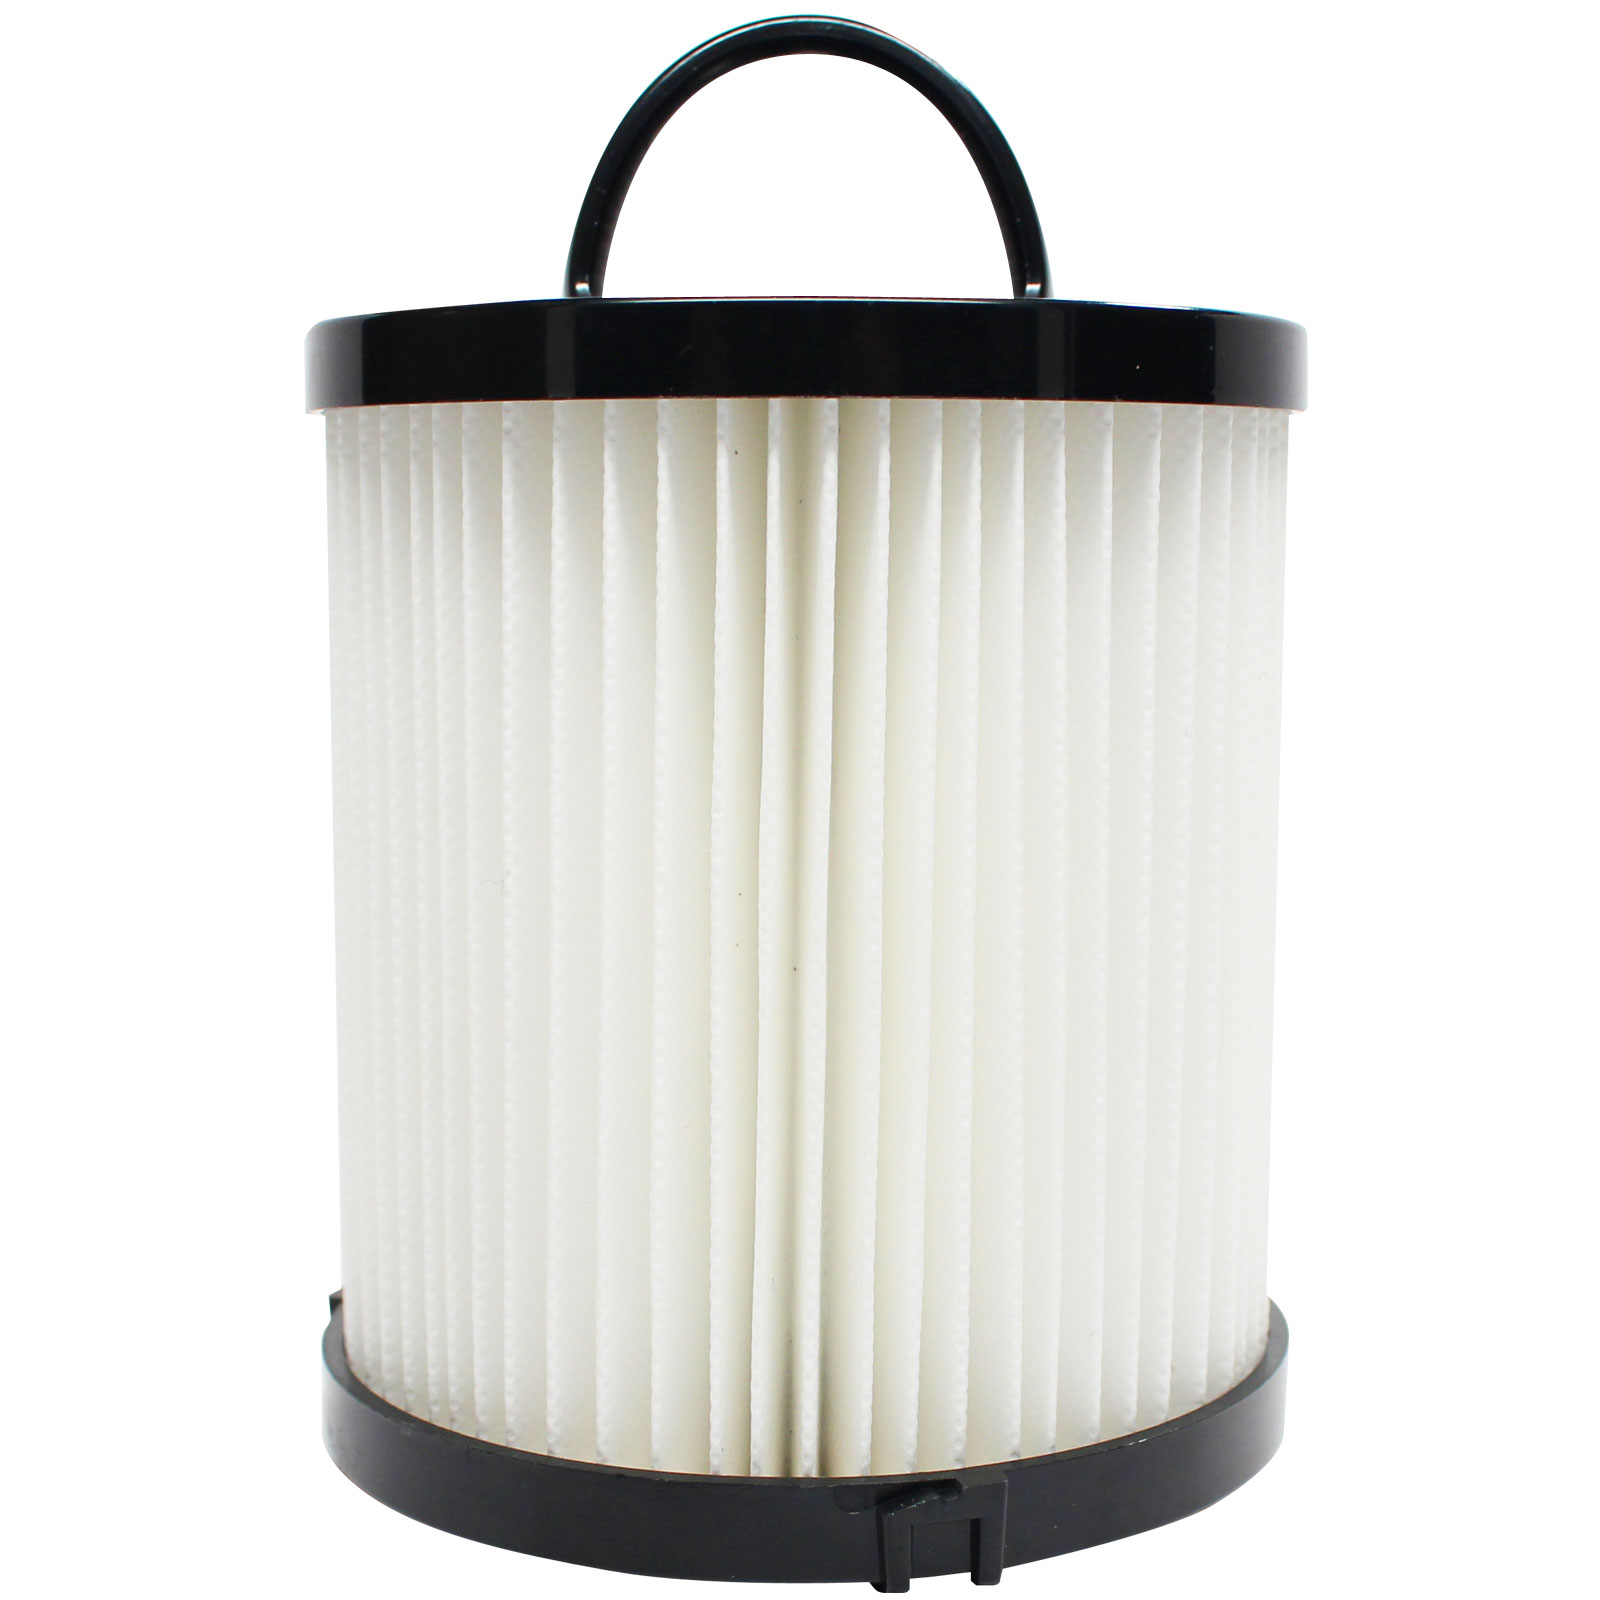 Vacuum Filter/& Filter Eureka for AS1052AX,AirSpeed AS1000A,AS1050